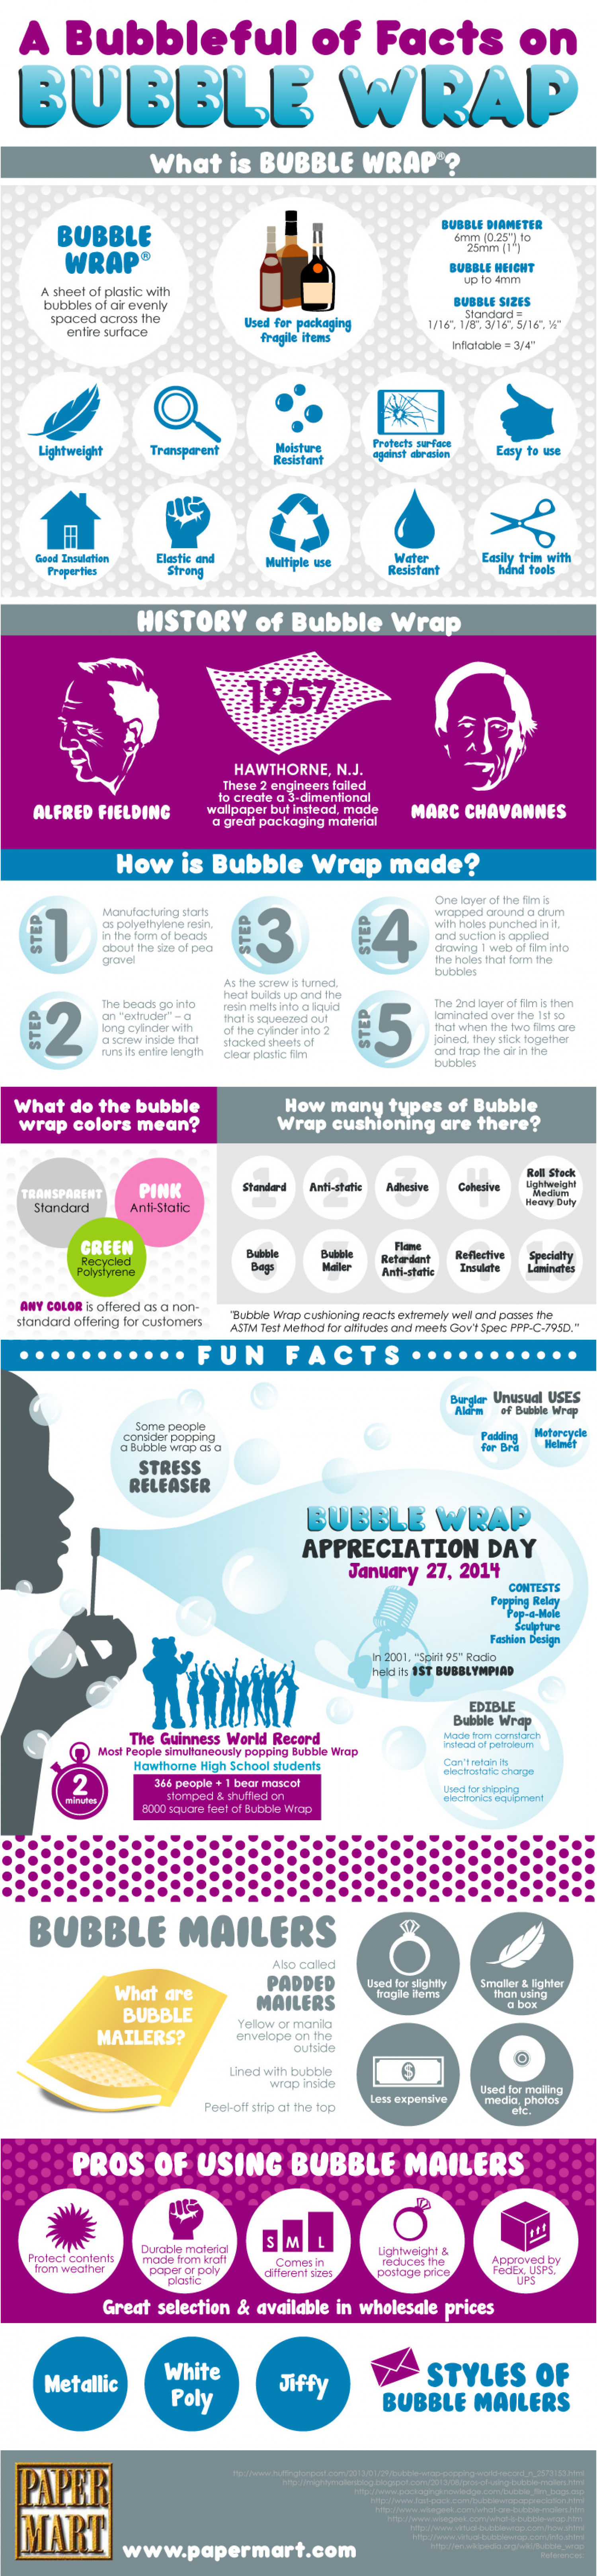 A Bubbleful of Facts on Bubble Wraps Infographic